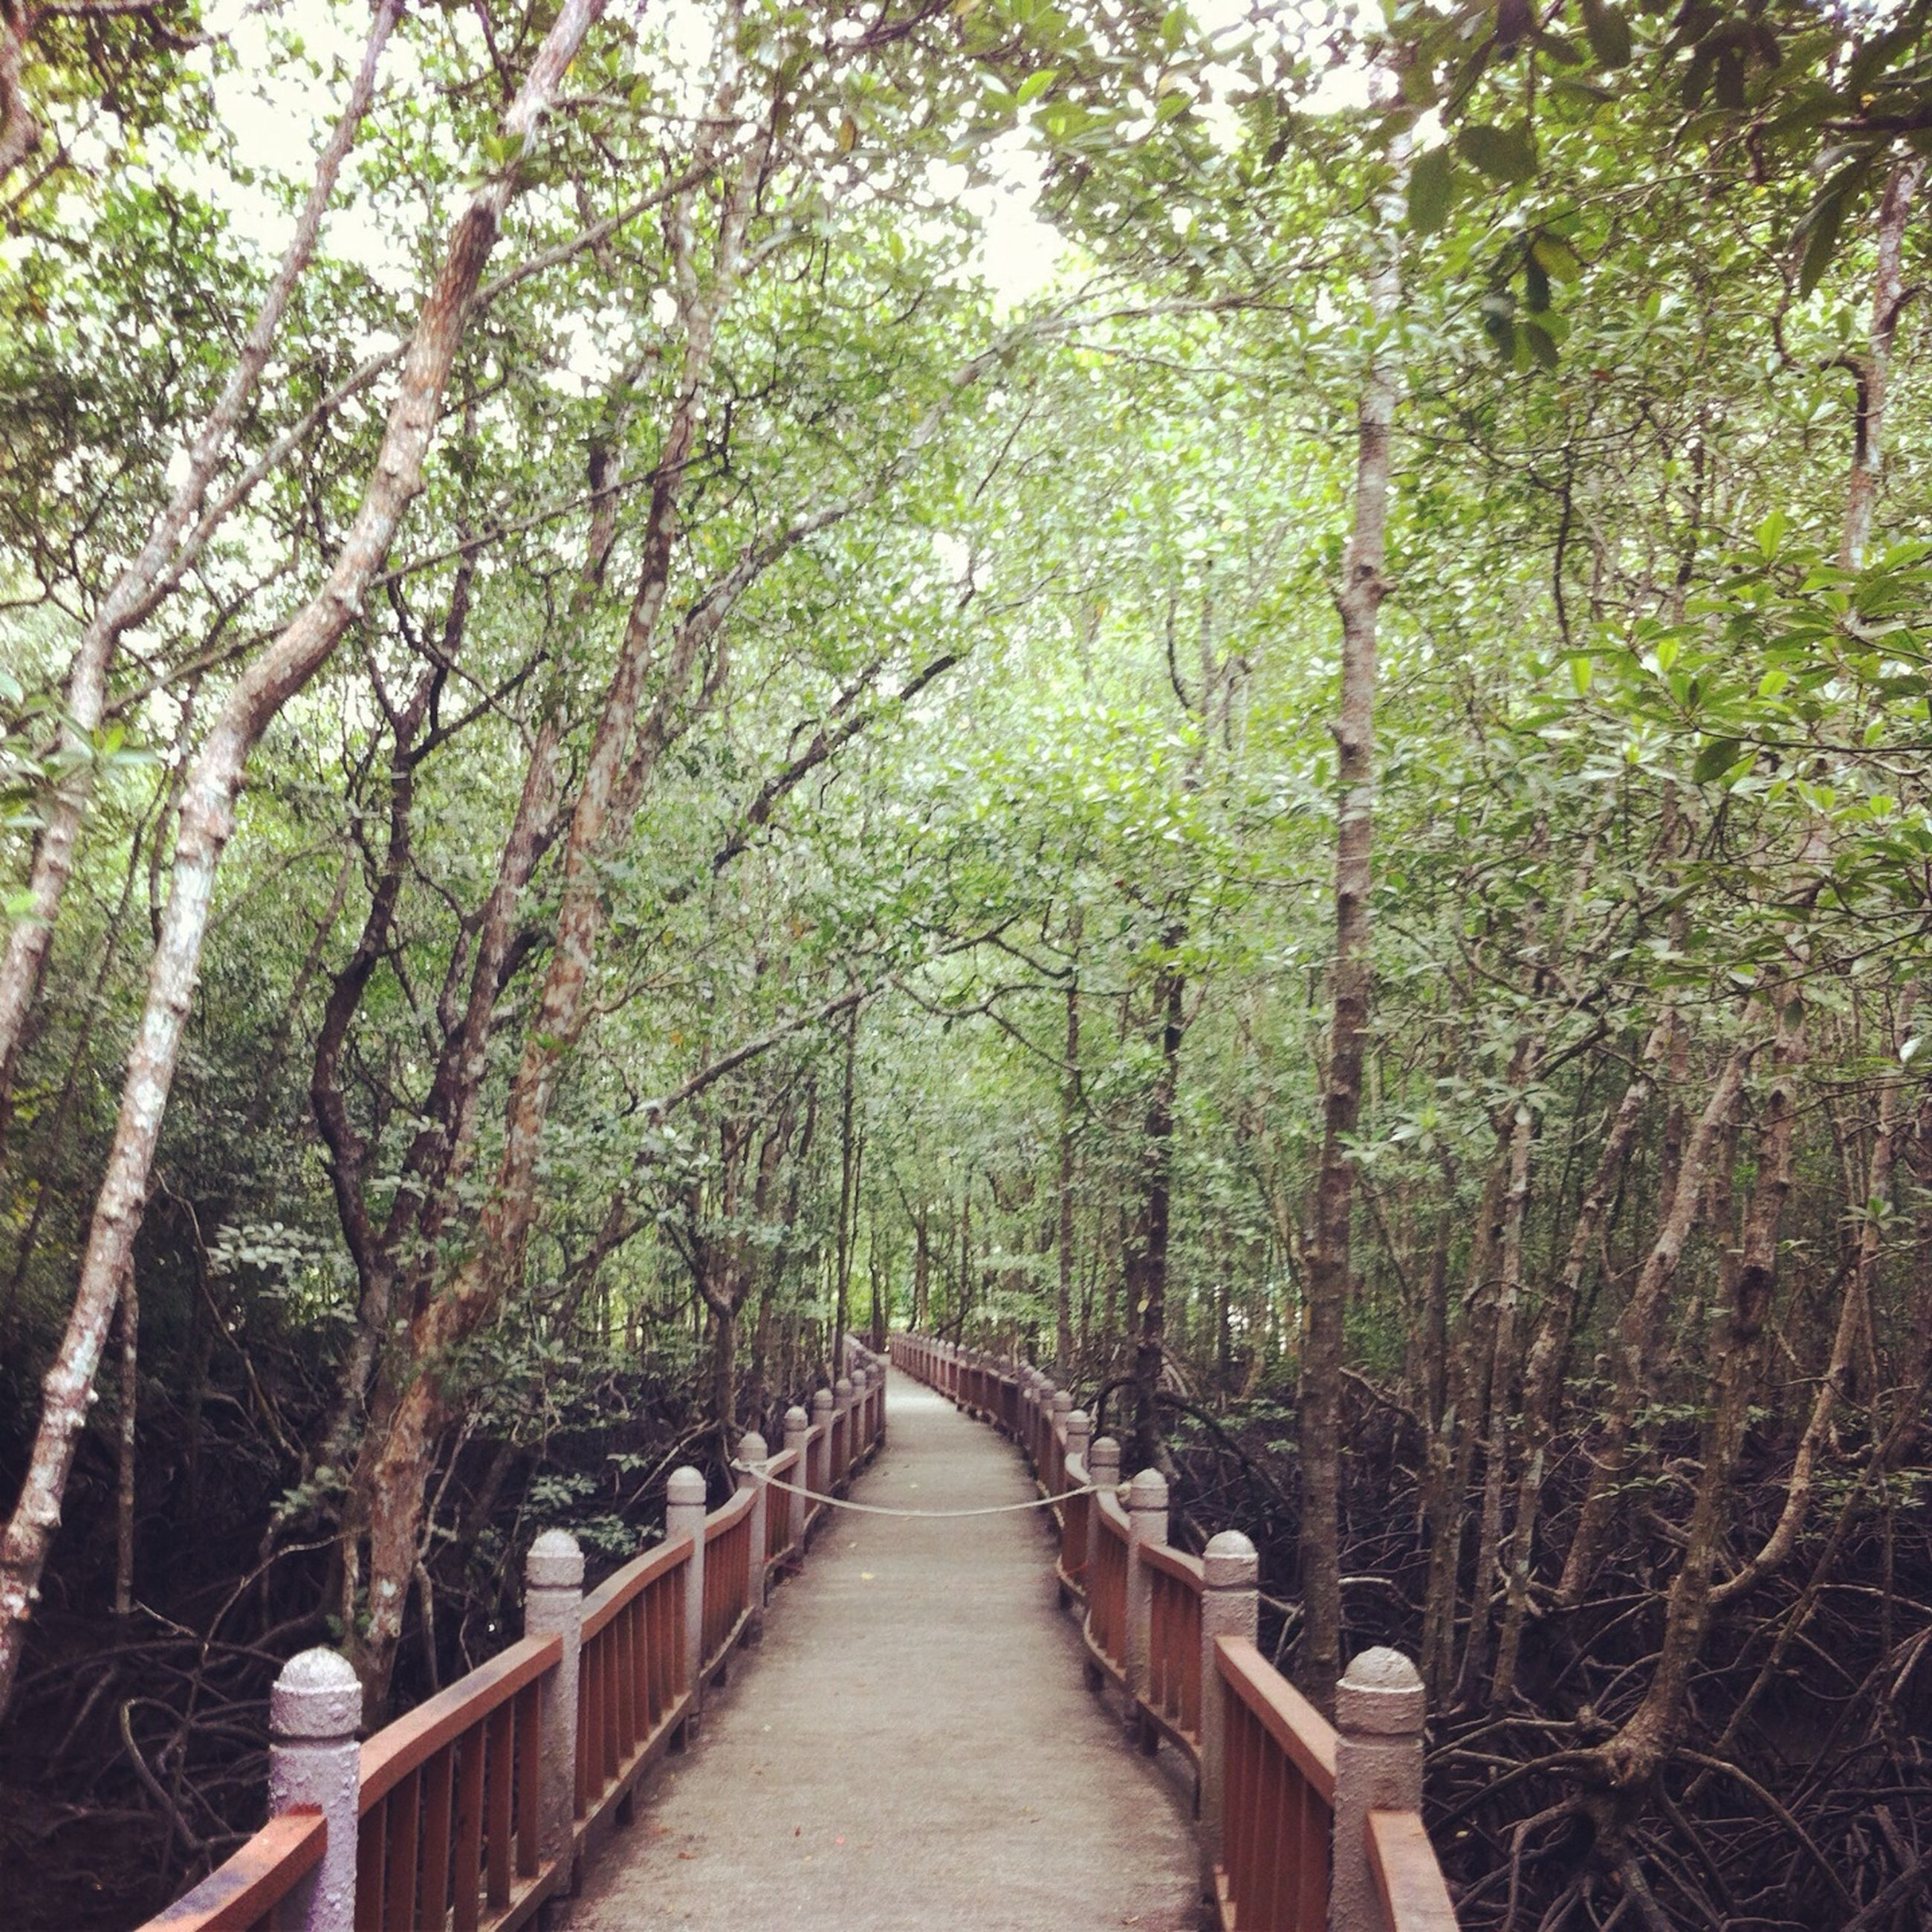 tree, the way forward, forest, railing, growth, diminishing perspective, tranquility, footbridge, nature, walkway, vanishing point, tranquil scene, green color, branch, wood - material, narrow, beauty in nature, pathway, footpath, boardwalk